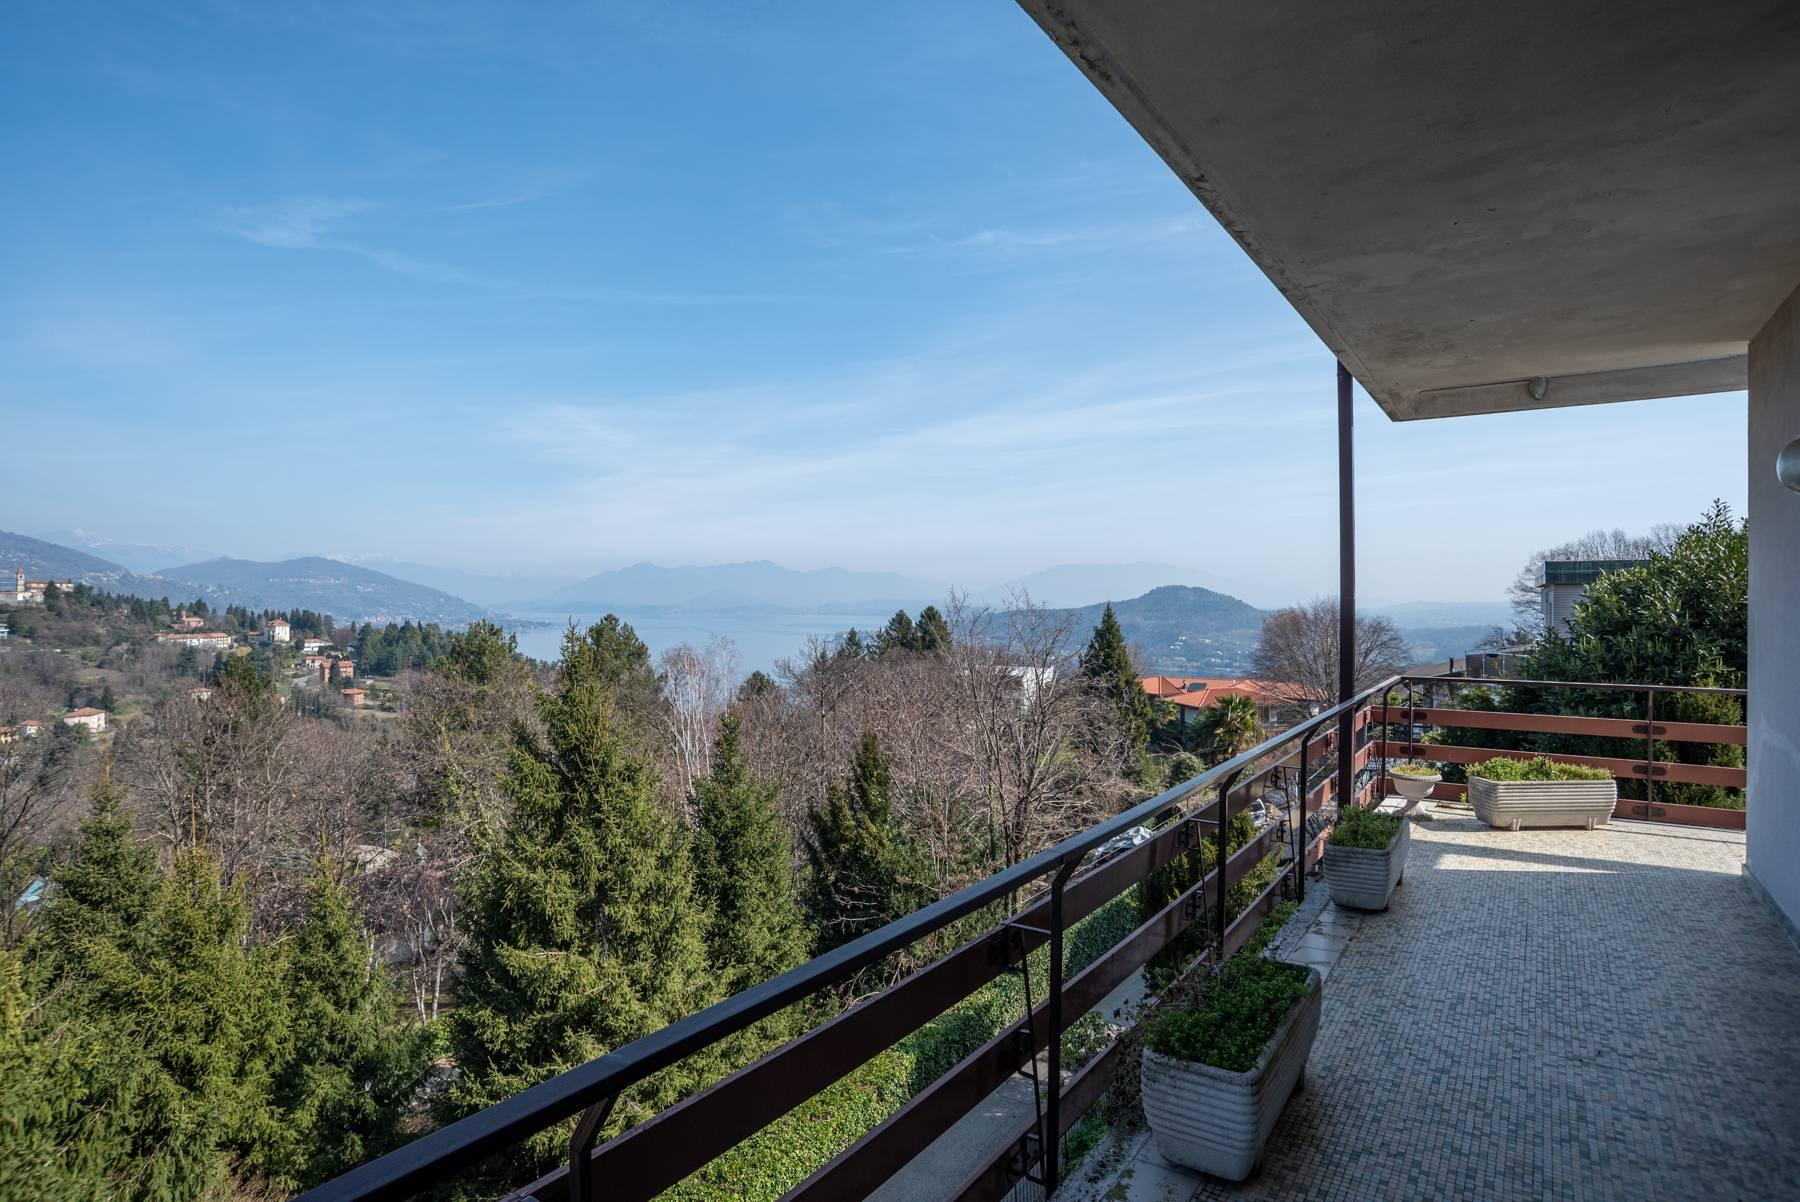 Villa on the hills of Arona overlooking the lake - 5